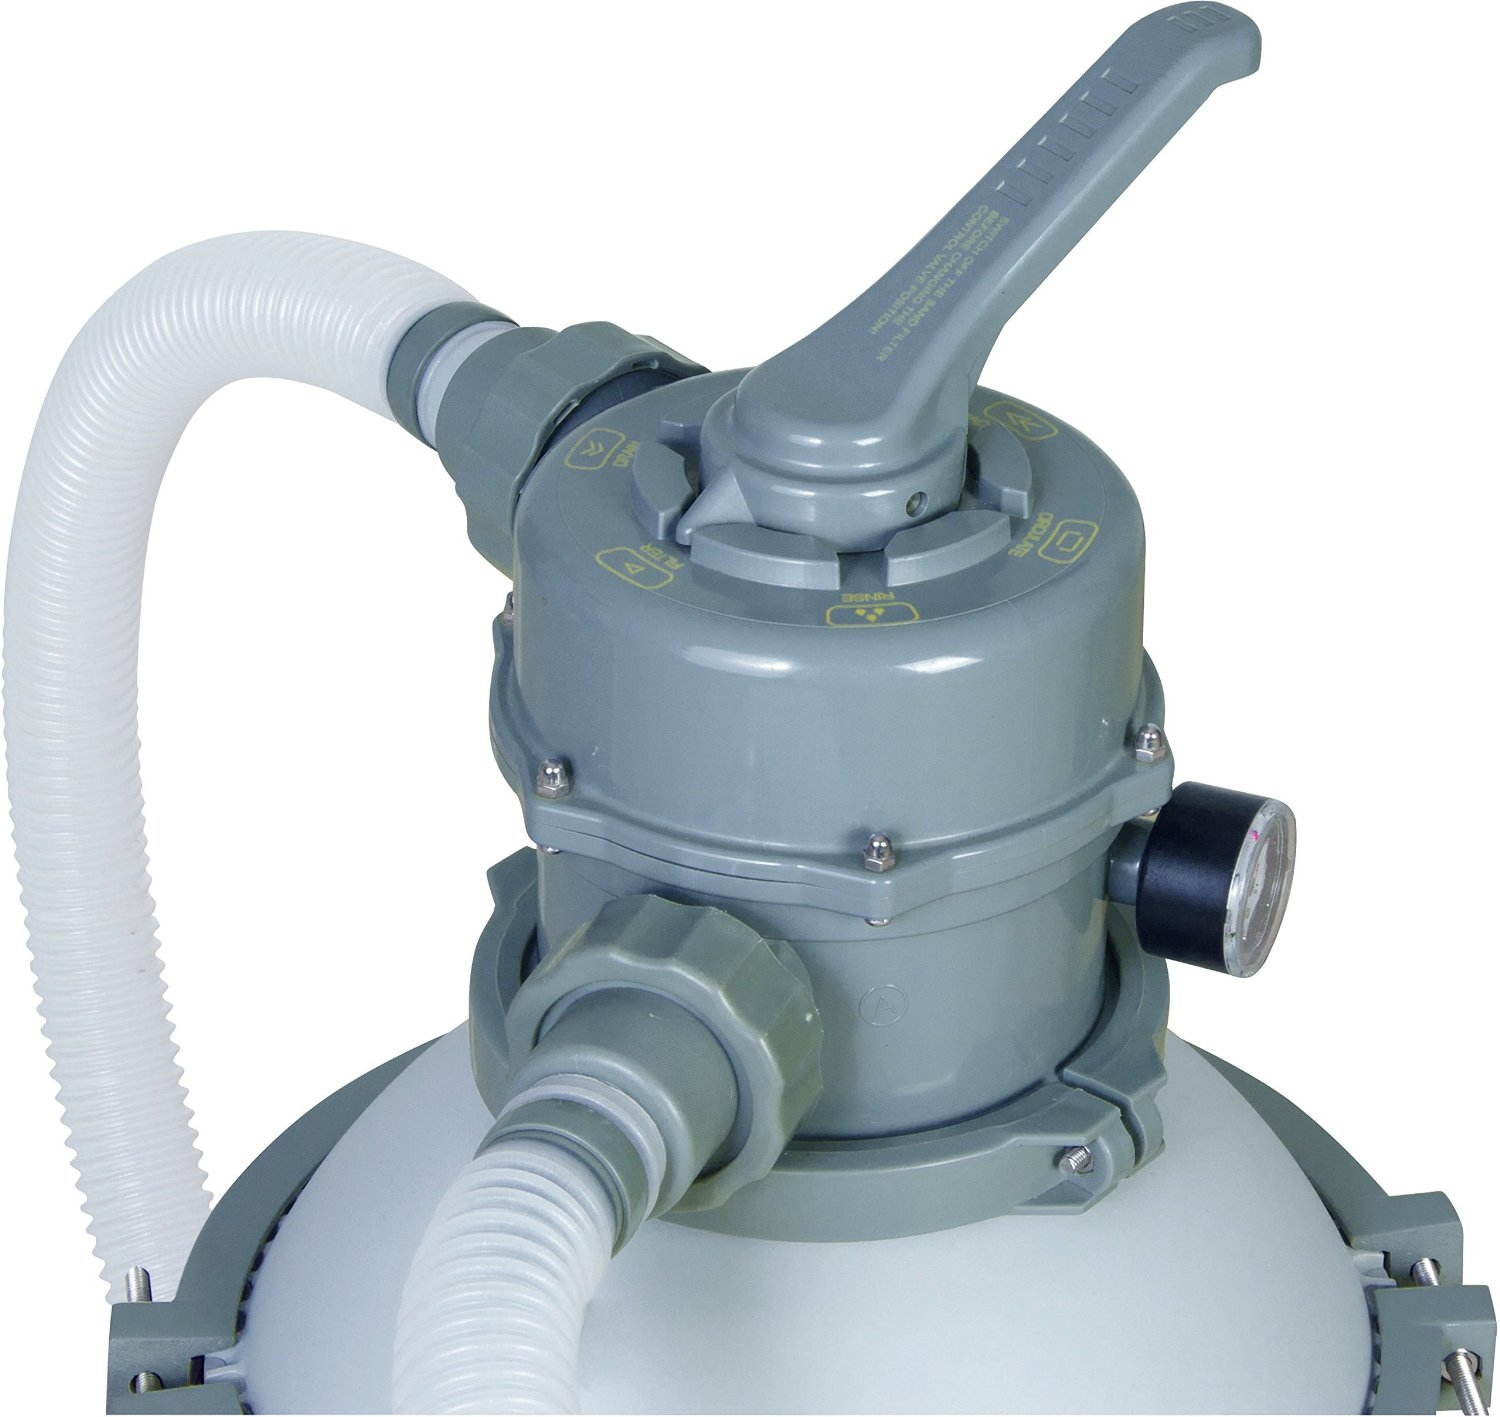 Pool Pumpe Anschließen Anleitung Bestway Bestway Sand Filter Pool Pump 530gph For Above Ground